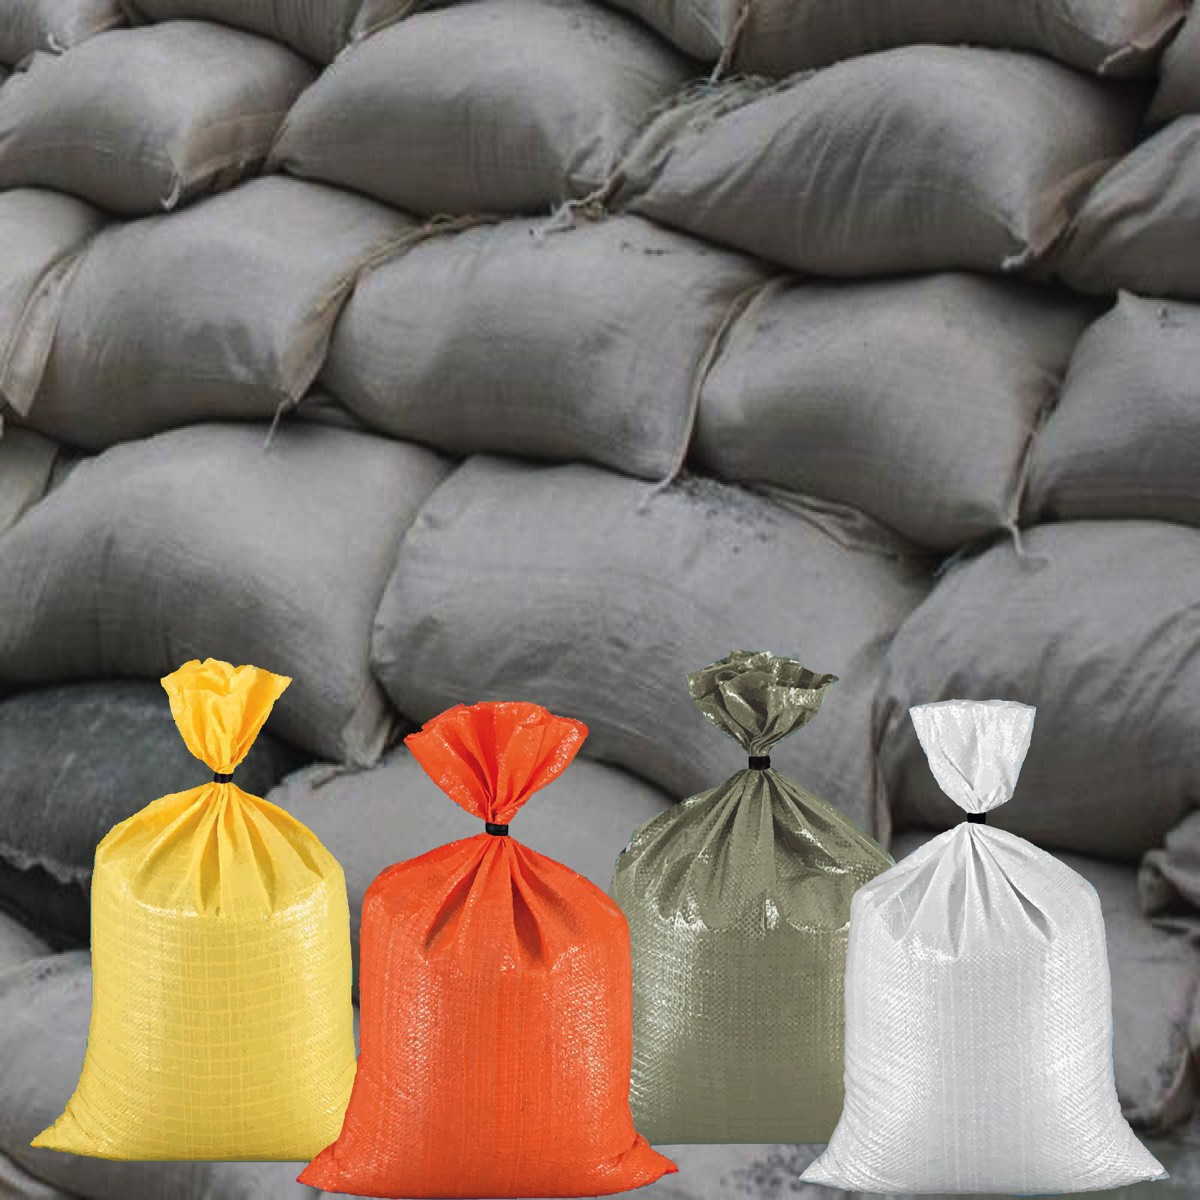 Flexible Packaging - Bulk Bags, Sandbags and More 2